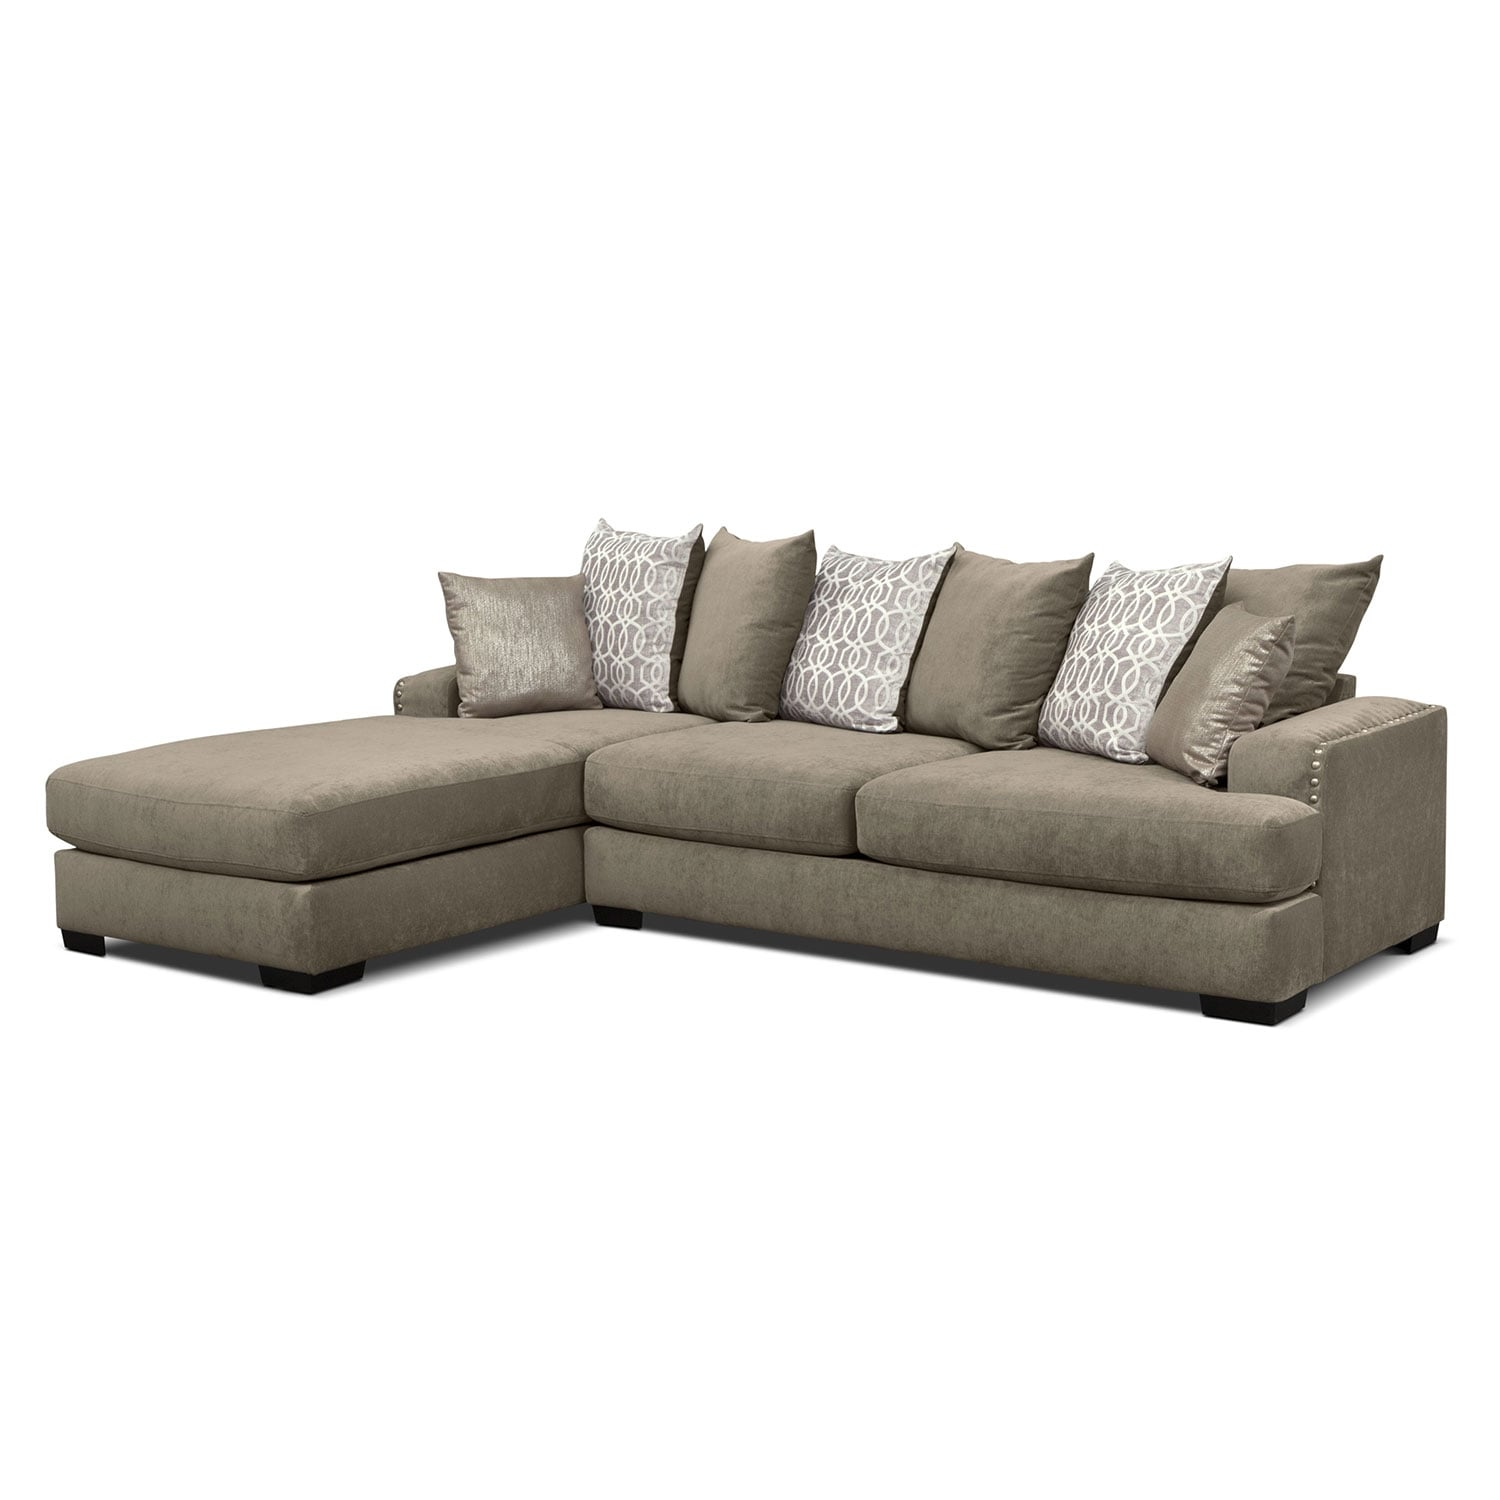 2 pc sectional sofa chaise 2 pc sectional with. Black Bedroom Furniture Sets. Home Design Ideas